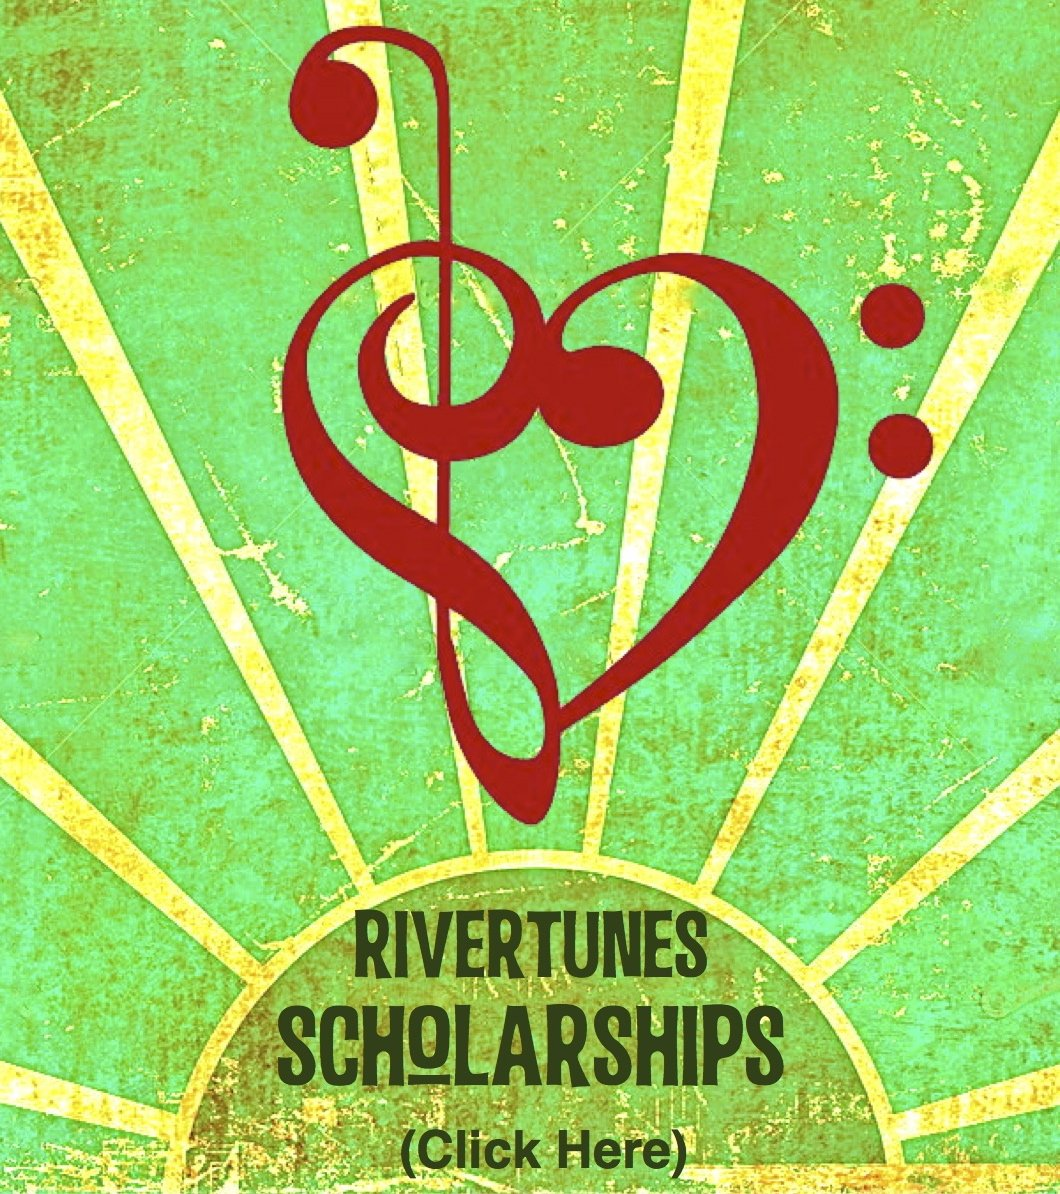 Click to view RiverTunes Scholarship information